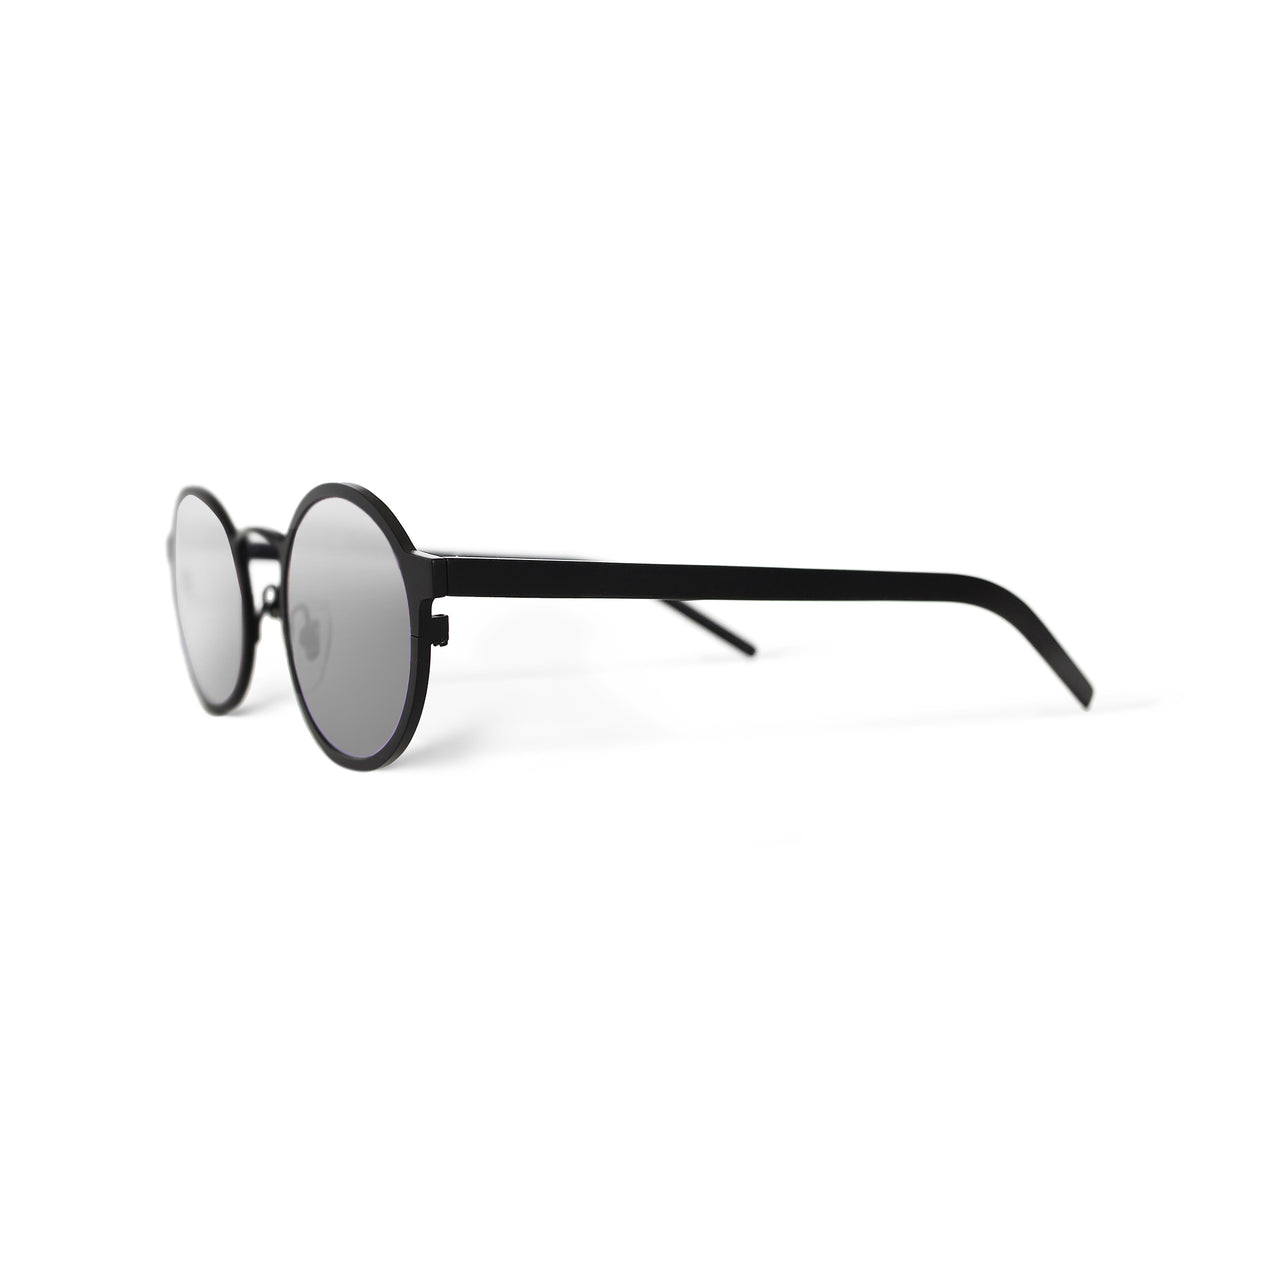 Metal. Gloss Black. Silver Mirror Lens. - BLYSZAK eyewear eyewear - eyewear, optical, sunglasses